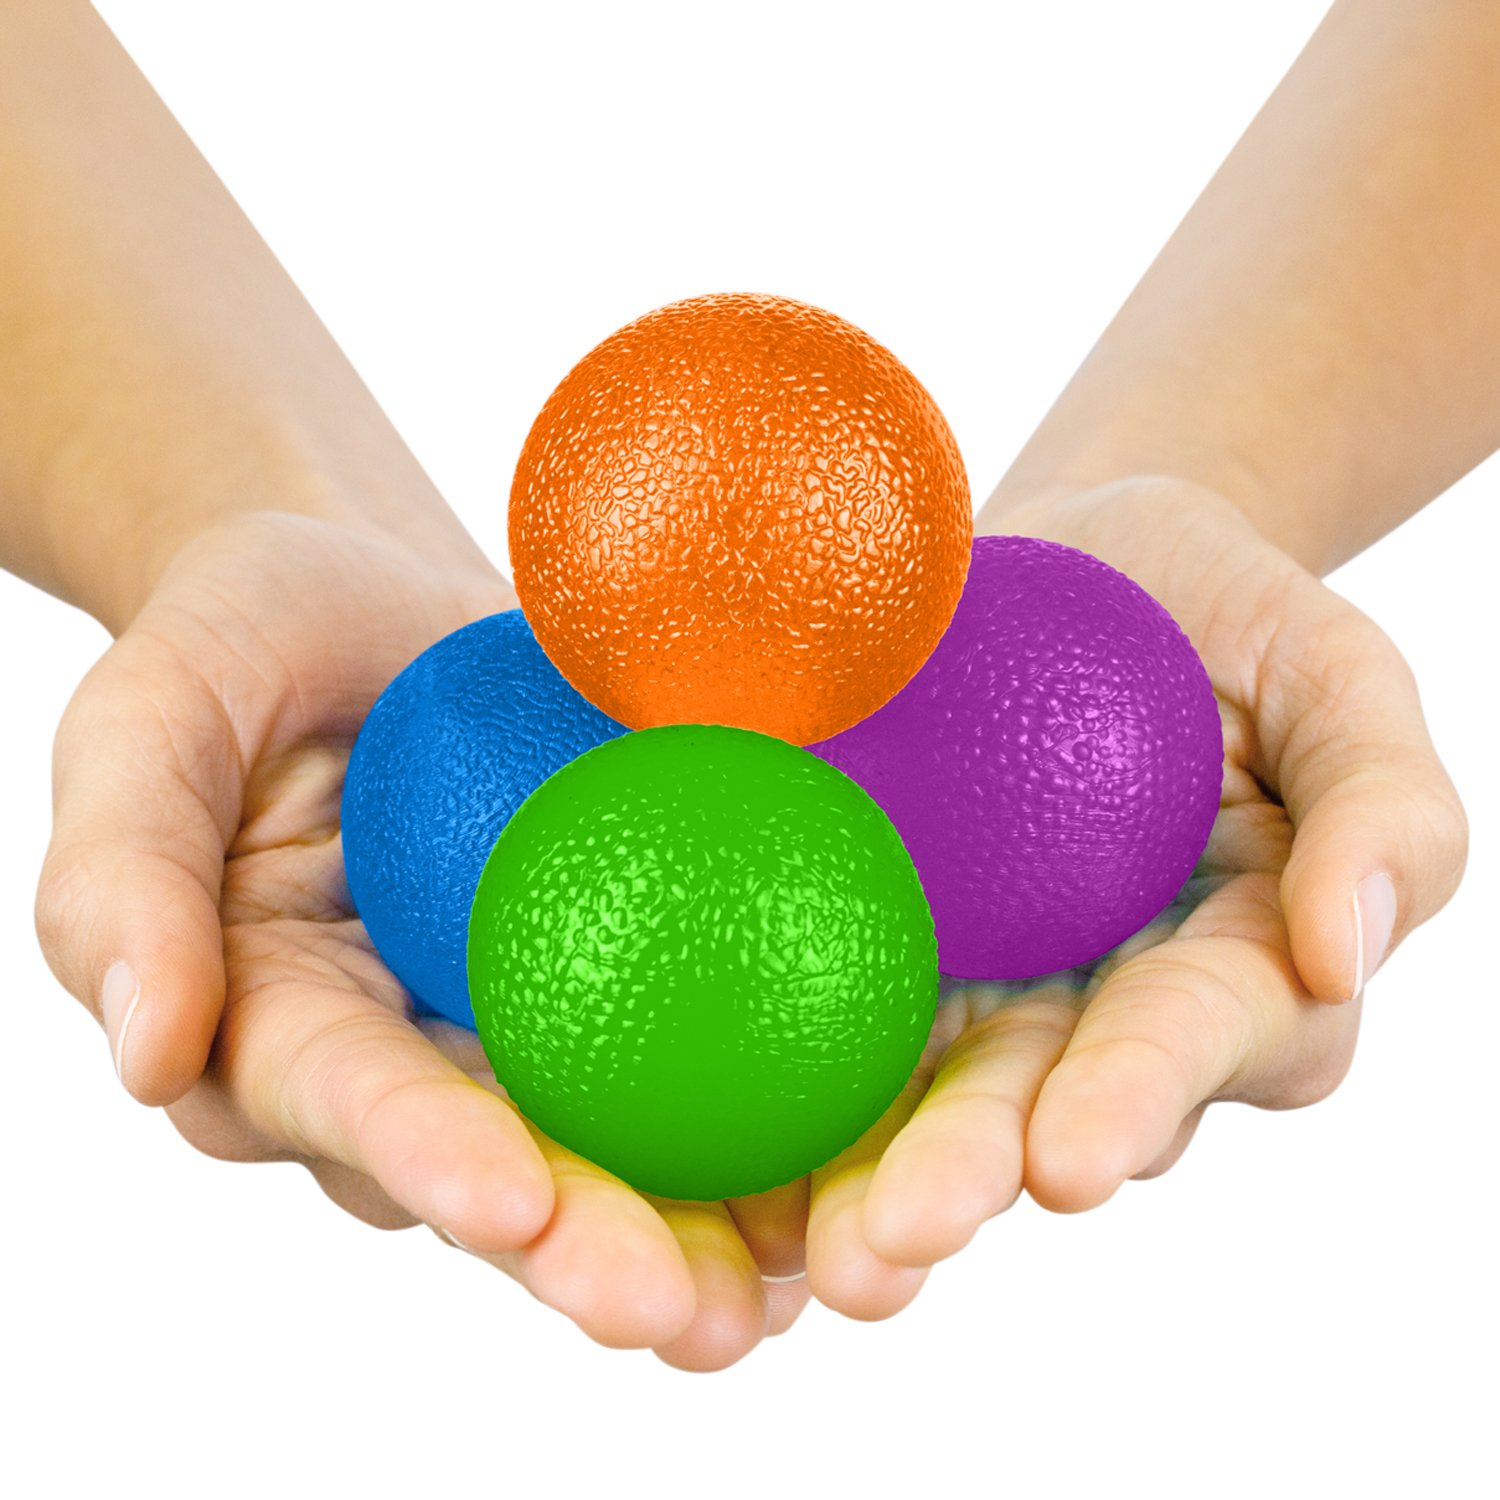 Vive Hand Exercise Balls – Grip Strengthening Physical, Occupational Therapy Kit – Squishy Stress, PT, Arthritis Pain Relief Workout Set – Fidget Finger Muscle Squeeze Resistance Strength Egg Trainers